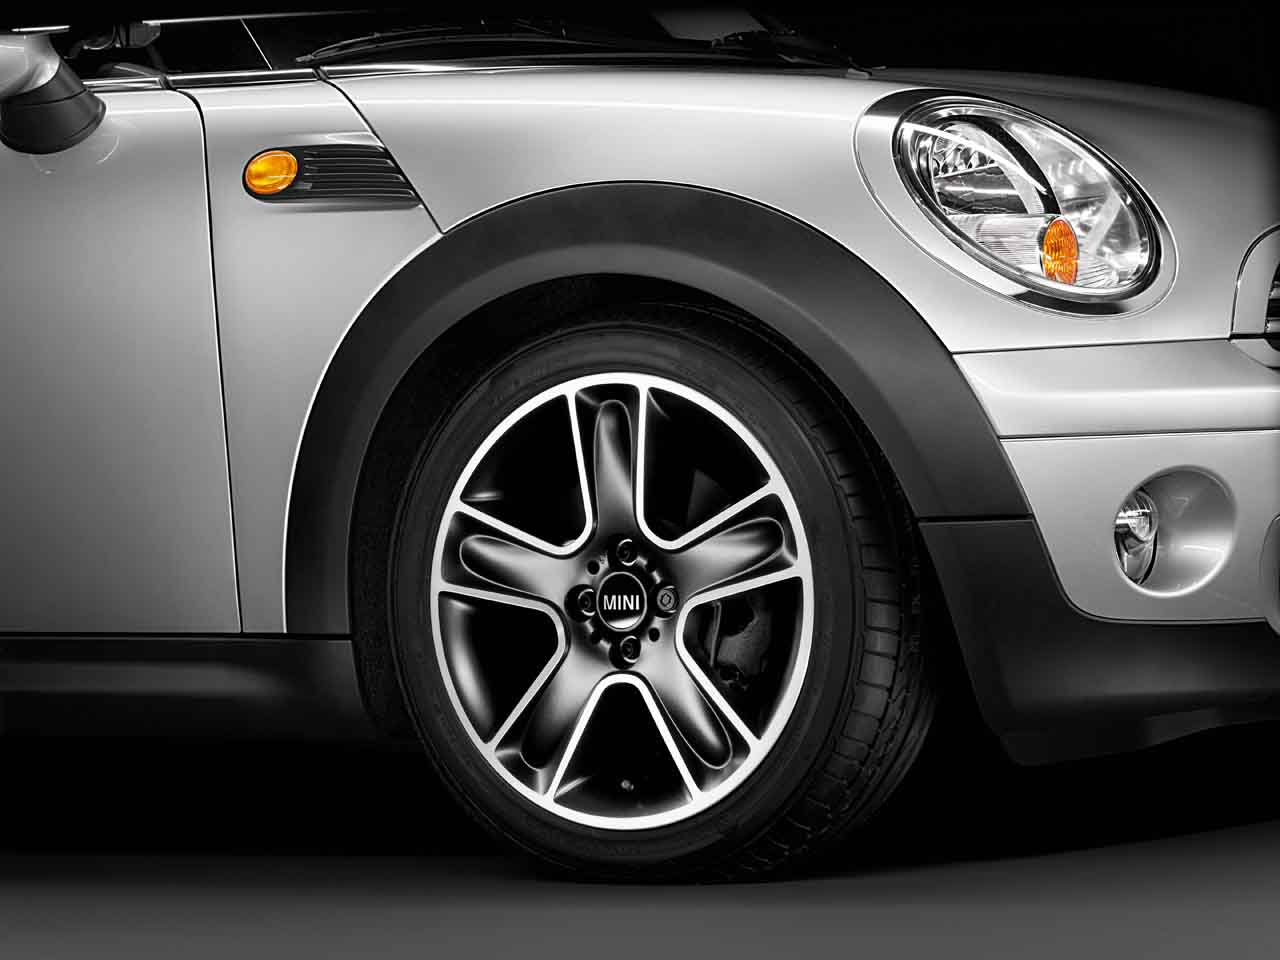 MINI Genuine 17 Inch Light Alloy Wheel Star Bullet R111